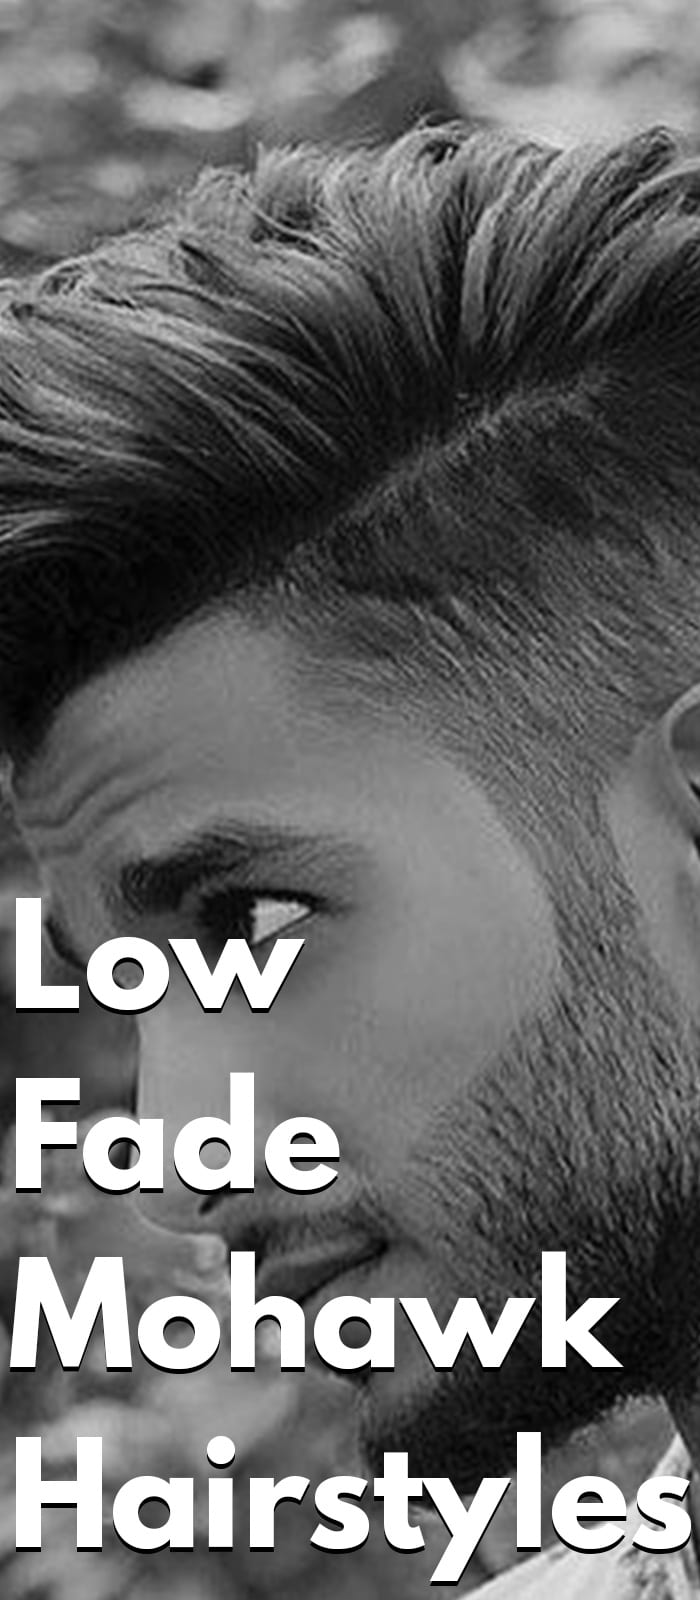 Low Fade Mohawk Hairstyles